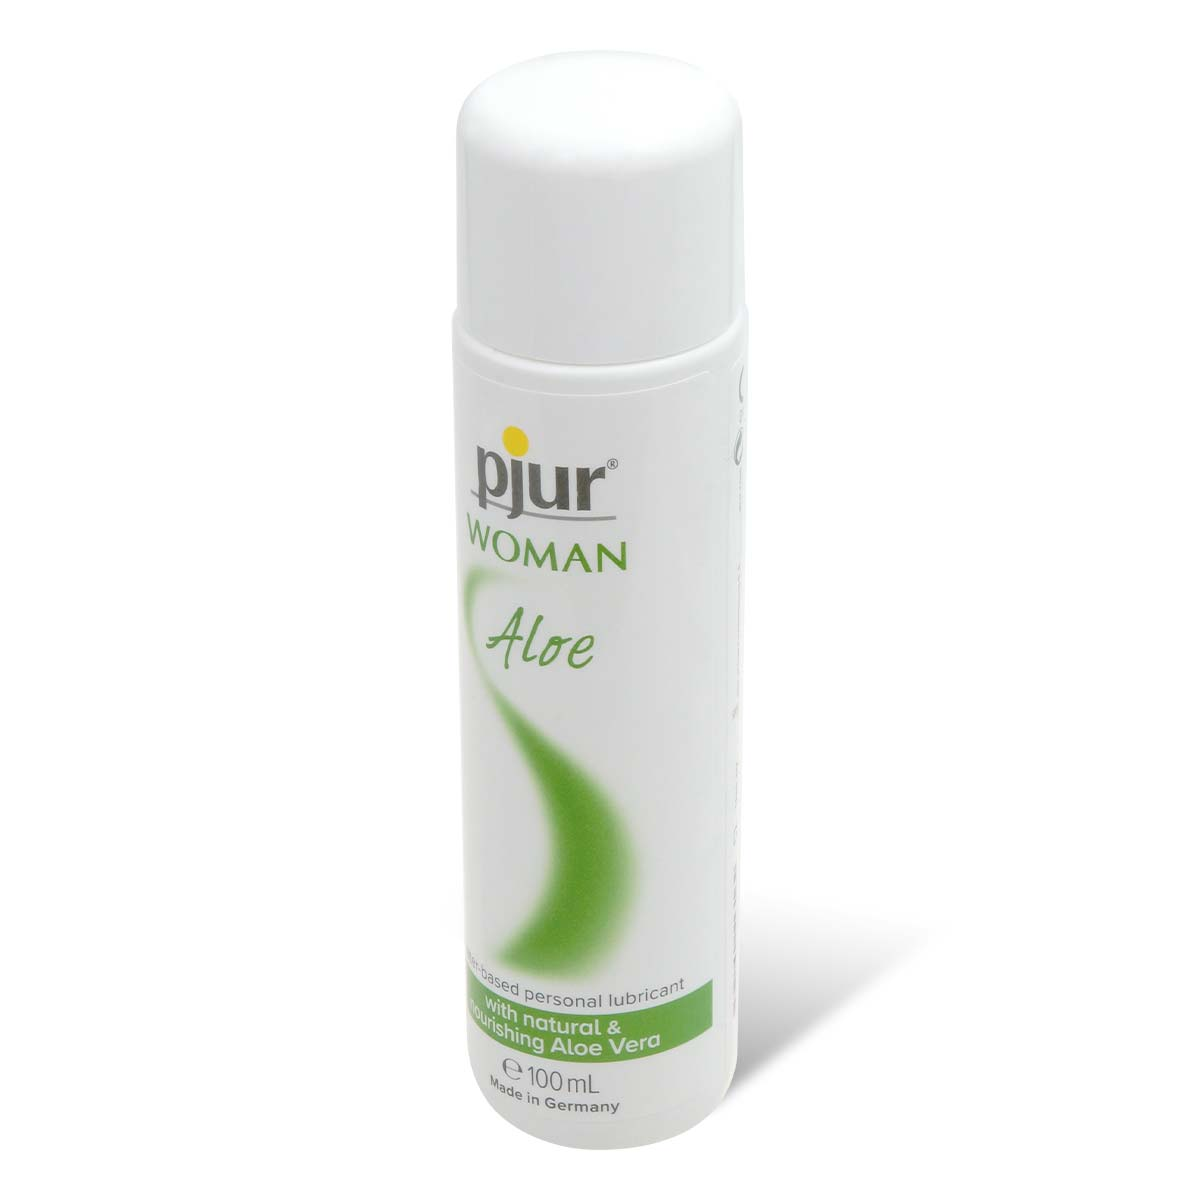 pjur WOMAN Aloe 100ml Water-based Lubricant